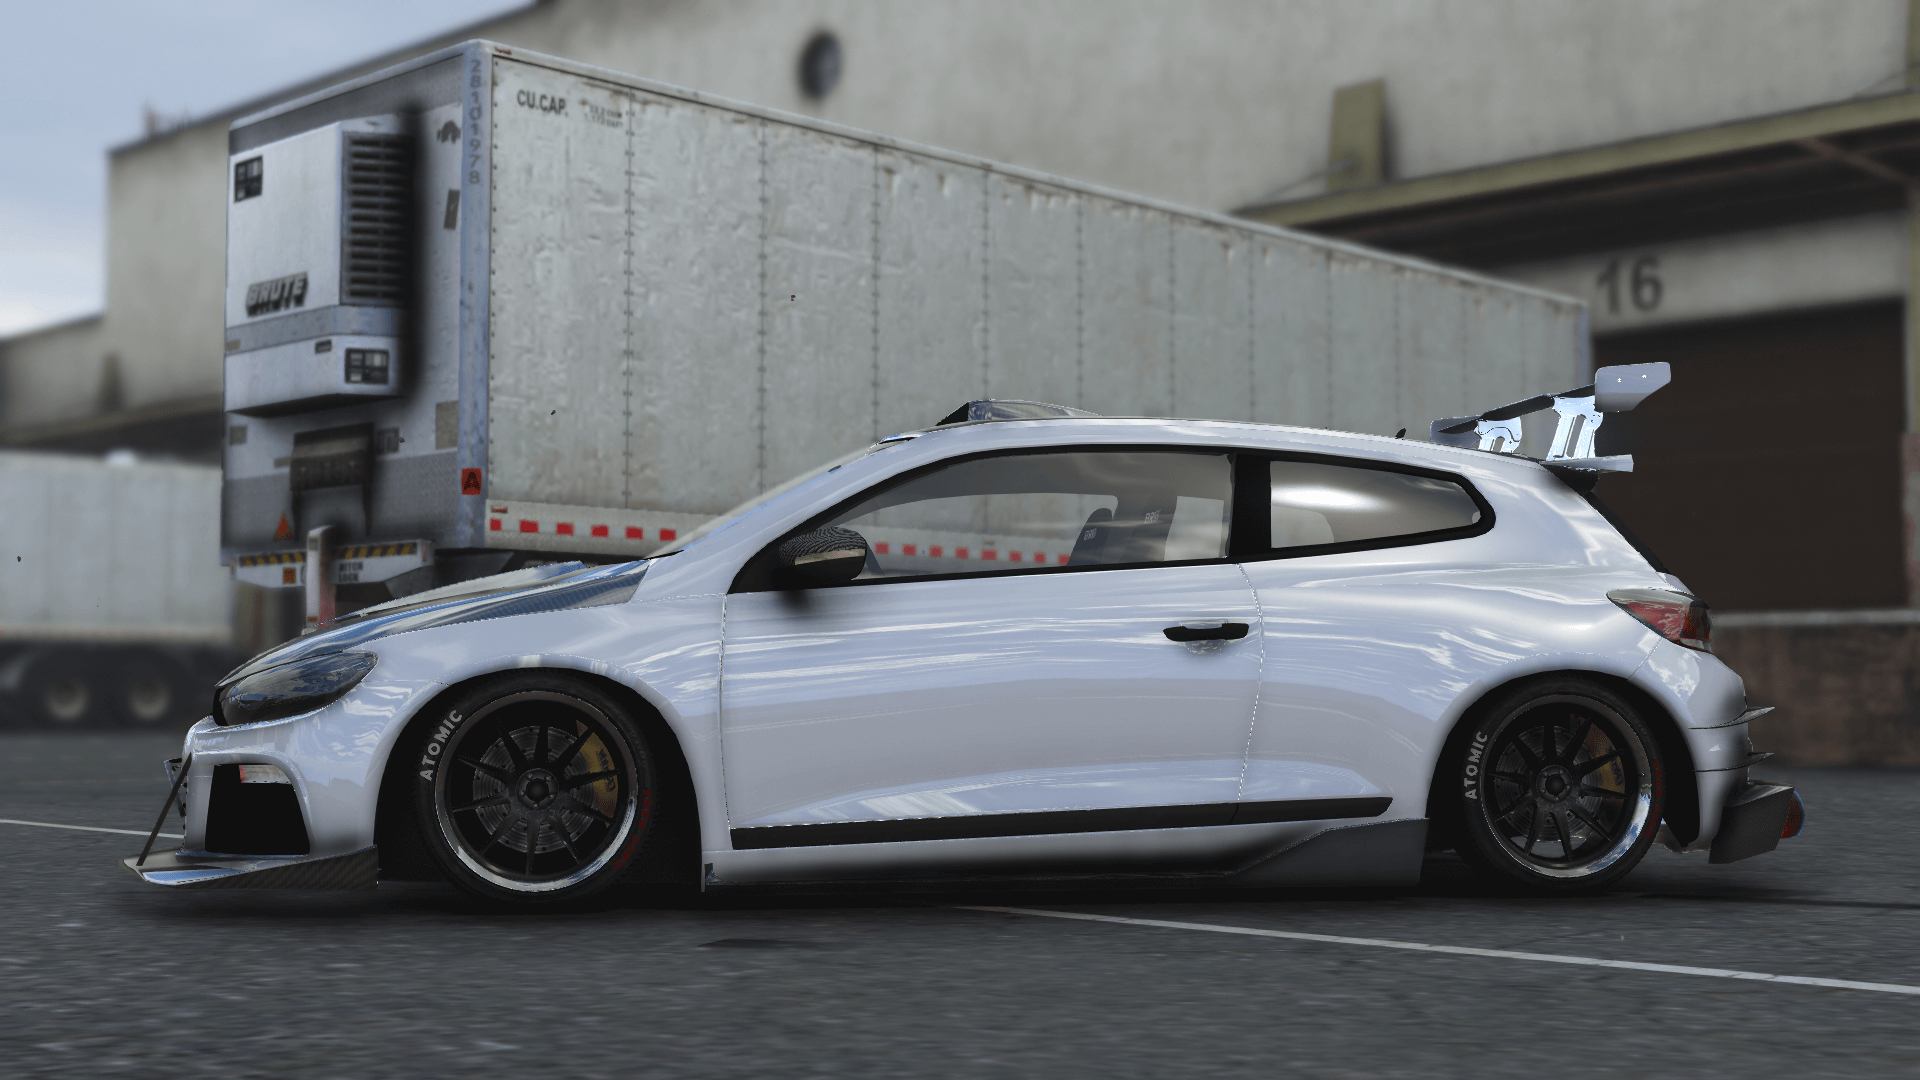 2010 volkswagen scirocco modify add on template tuning gta5. Black Bedroom Furniture Sets. Home Design Ideas